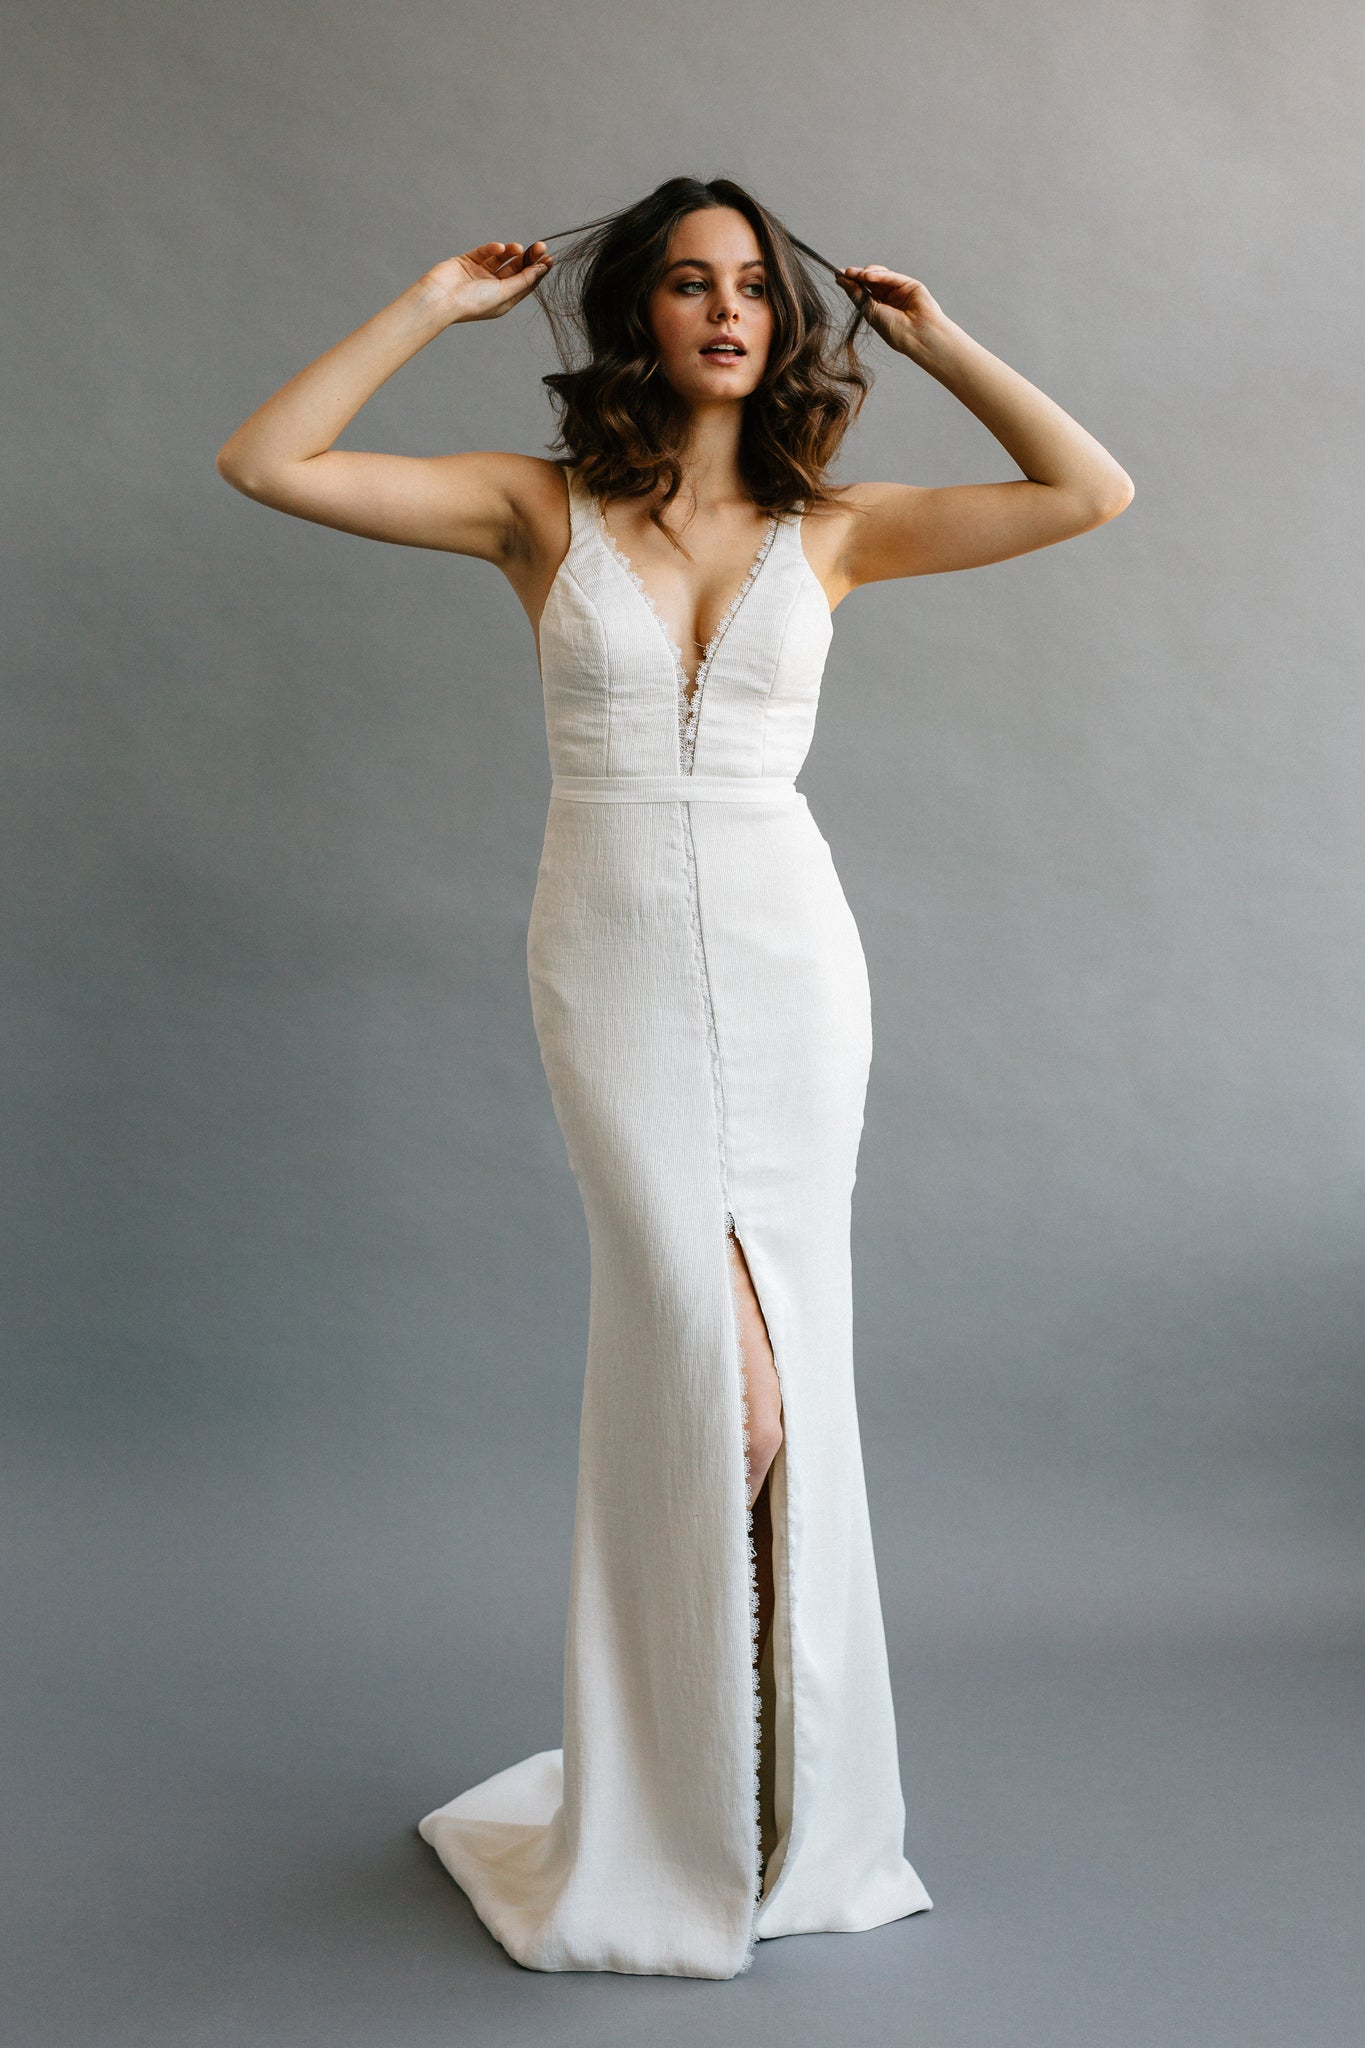 A modern simple wedding gown with a deep v, low back, made ethically by hand with a lightweight ribbed crepe